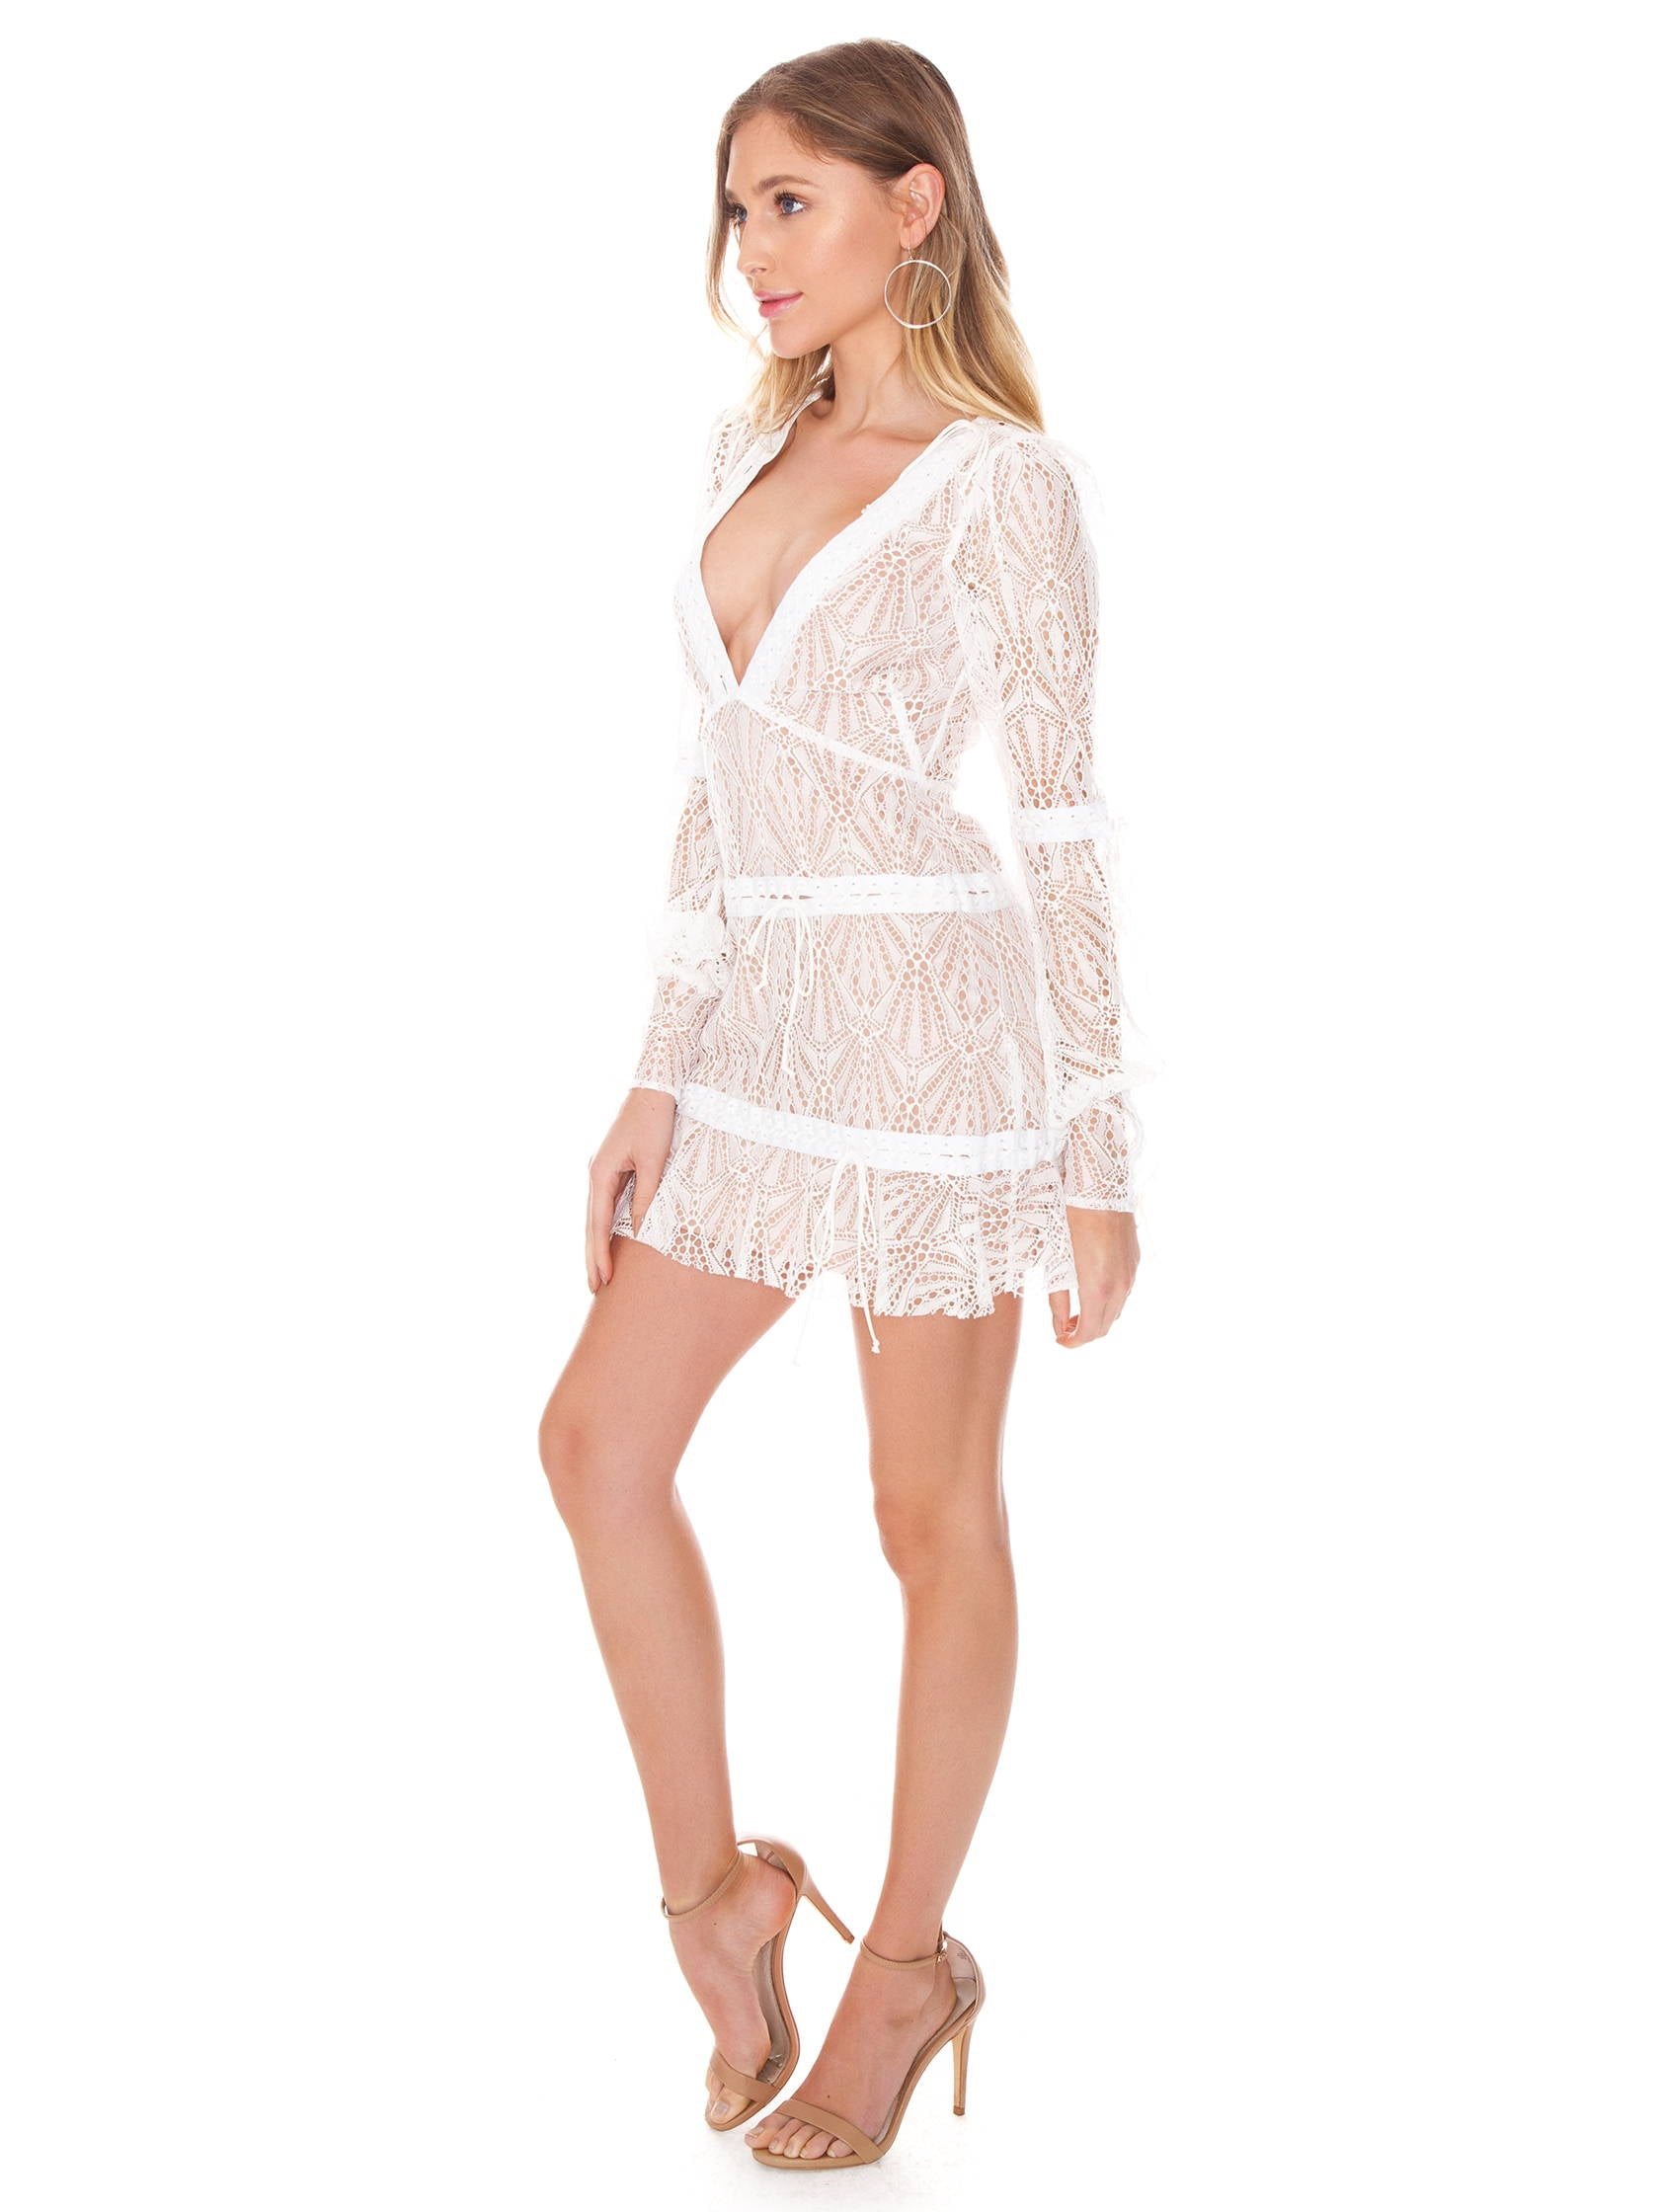 Woman wearing a dress rental from For Love & Lemons called Bright Lights Mini Dress